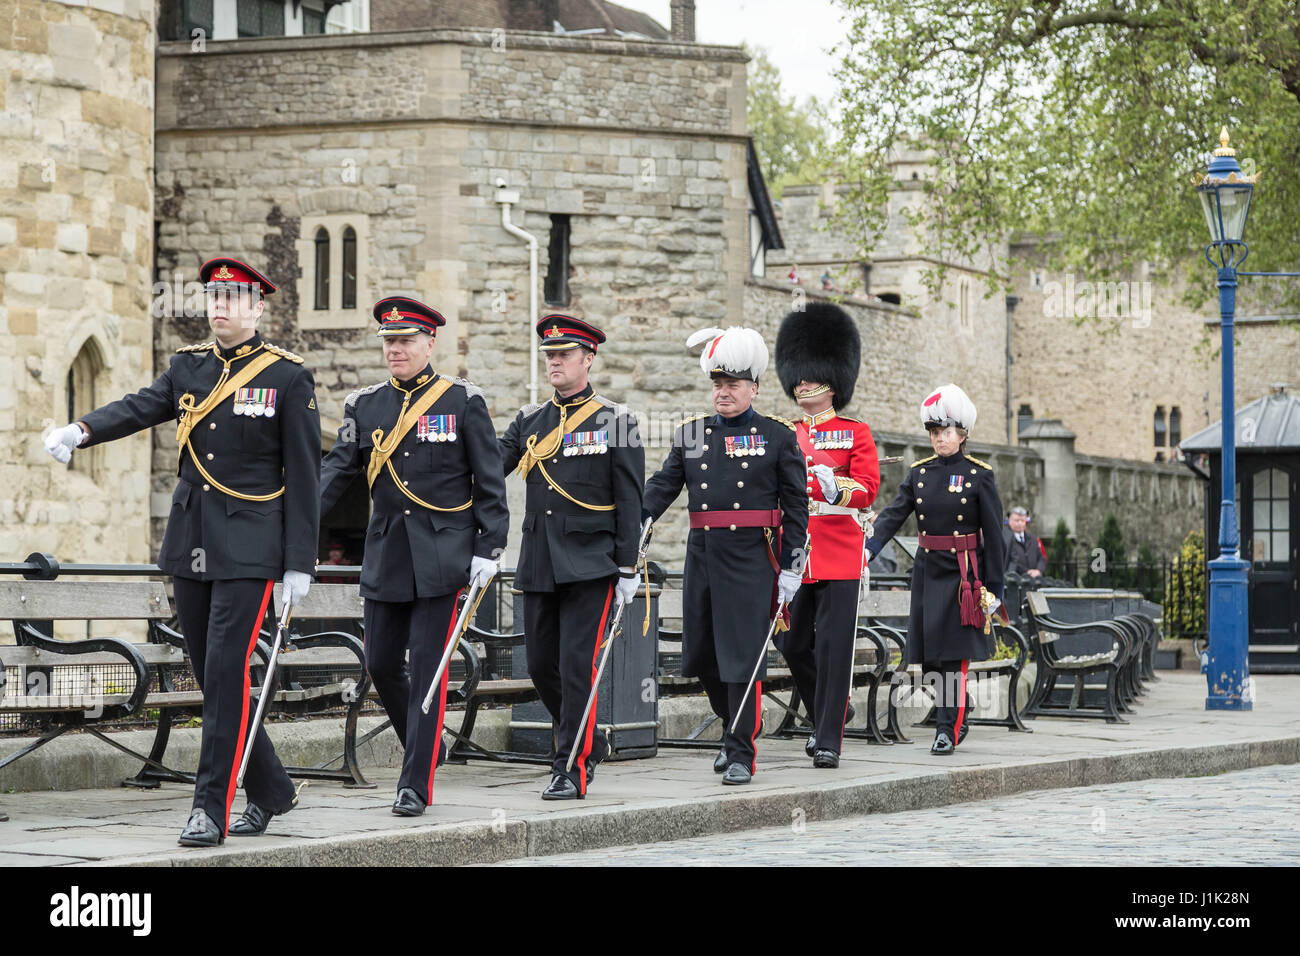 London, UK. 21st April, 2017. 62-gun salute fired by the Honourable Artillery Company at the Tower of London on - Stock Image